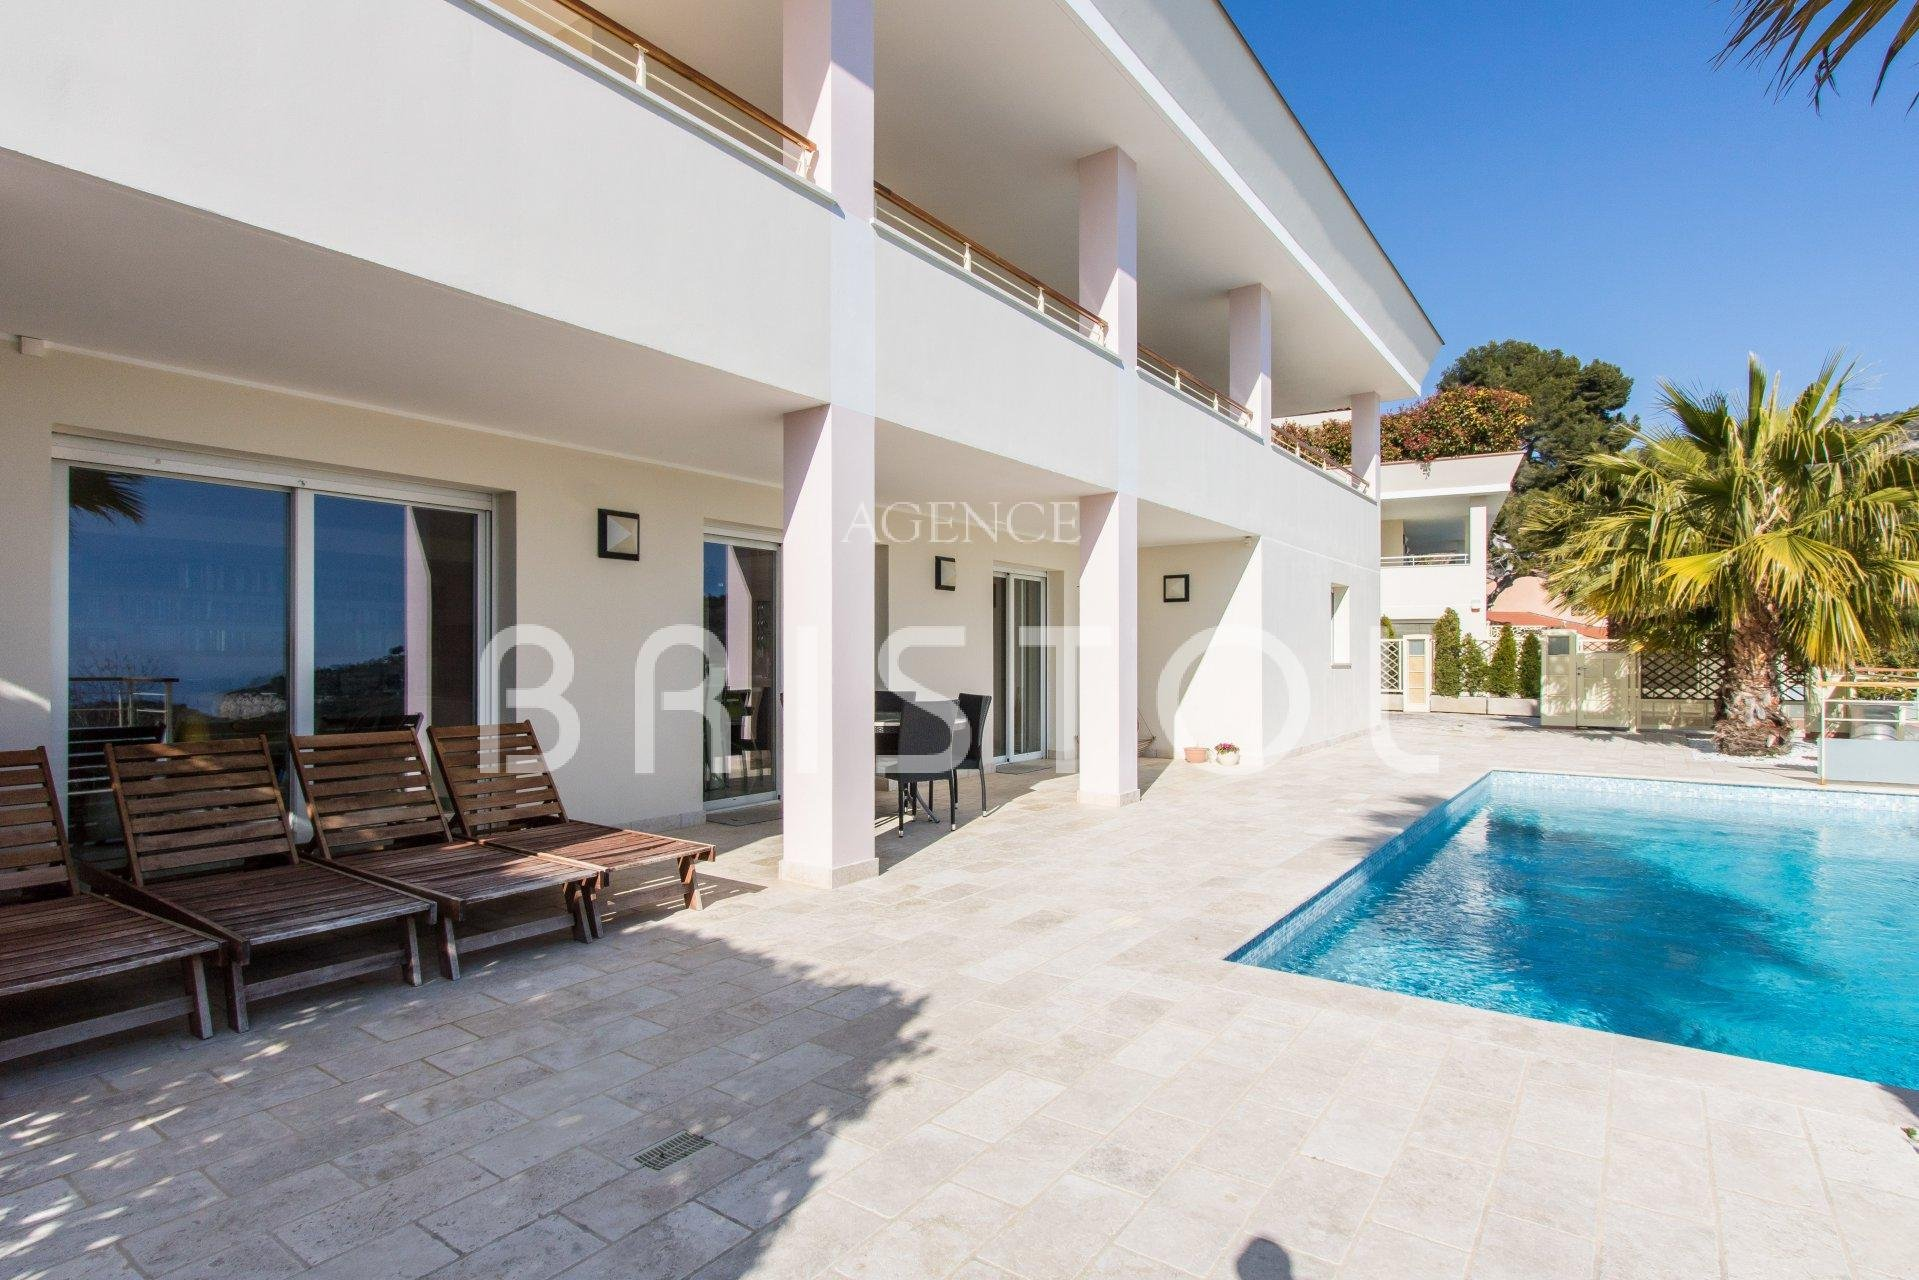 Eze - superb contemporary villa close to Monaco with swimming-pool and sea view